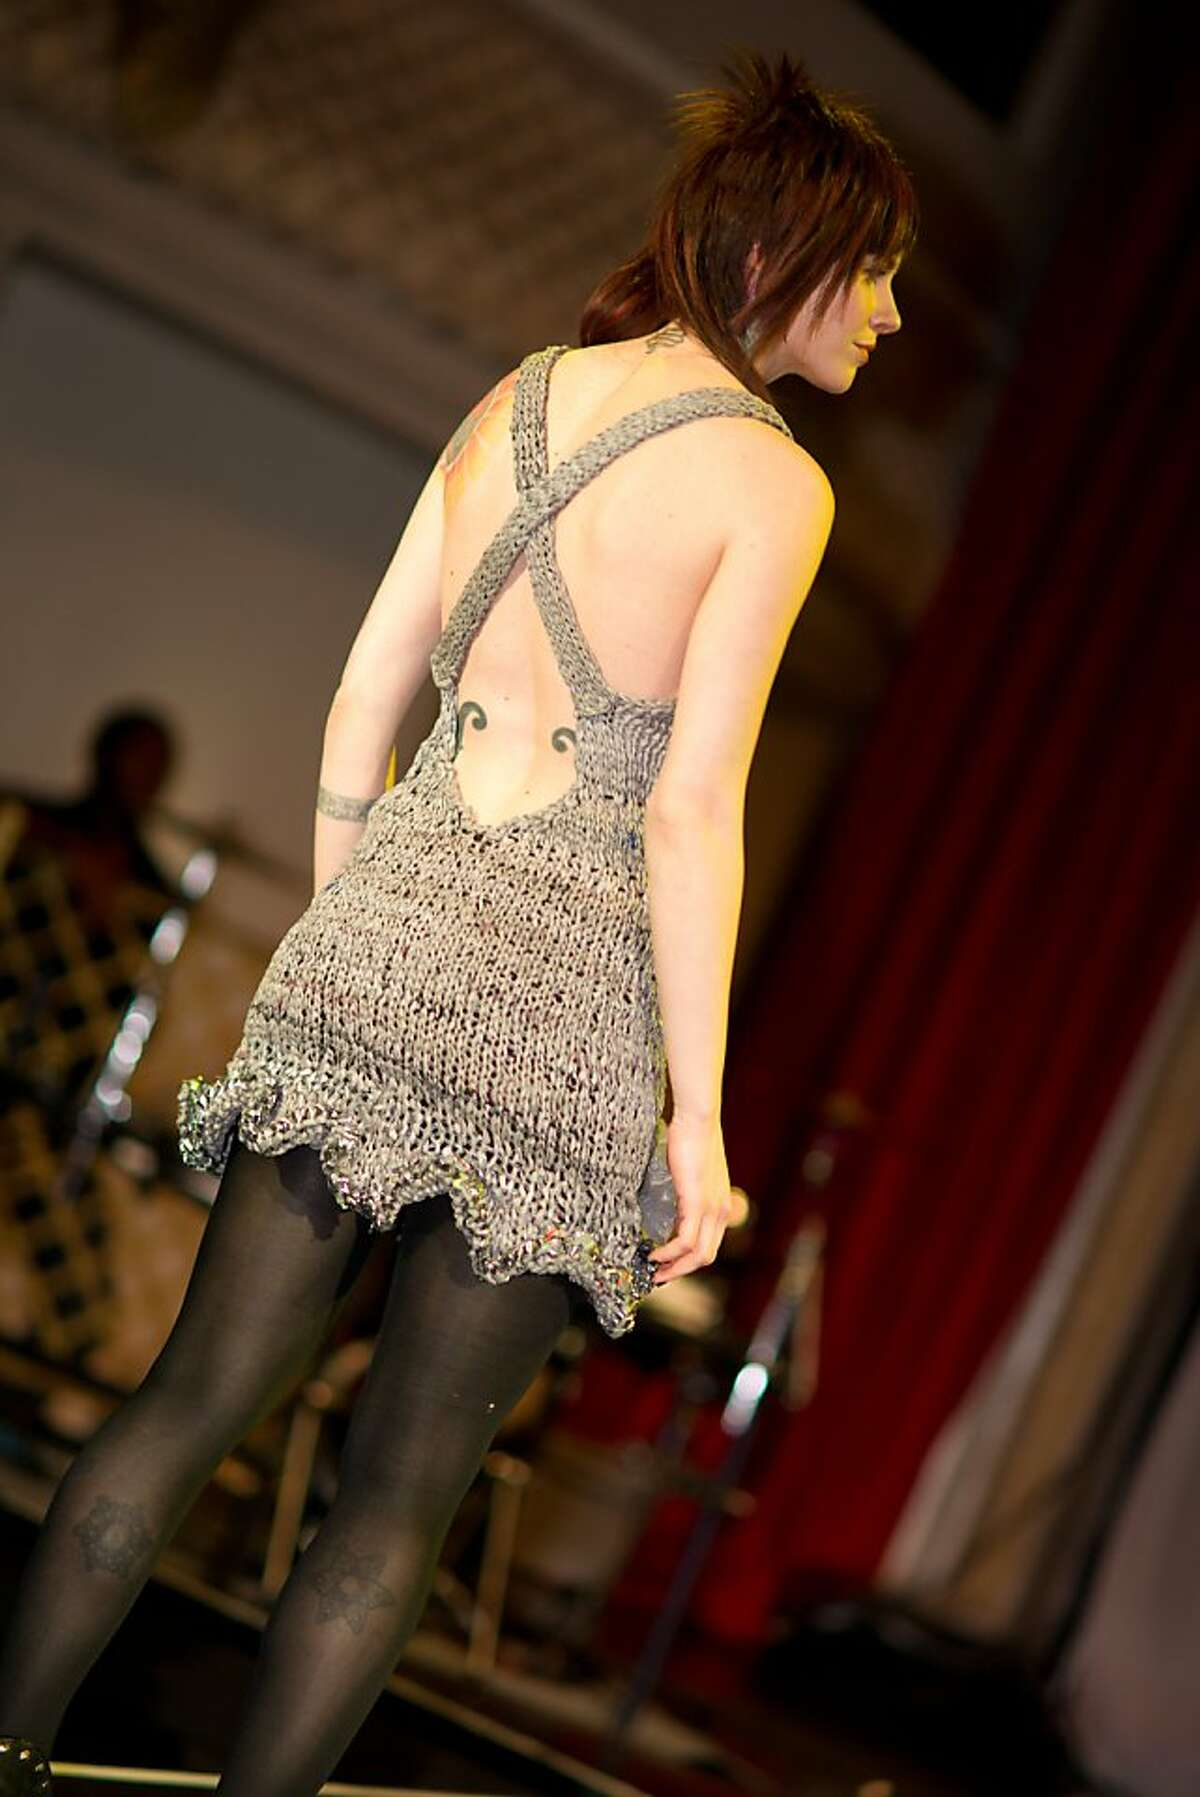 Kelly Koehler modeled dress made of plastic bags designed by Shaun Muscolo at